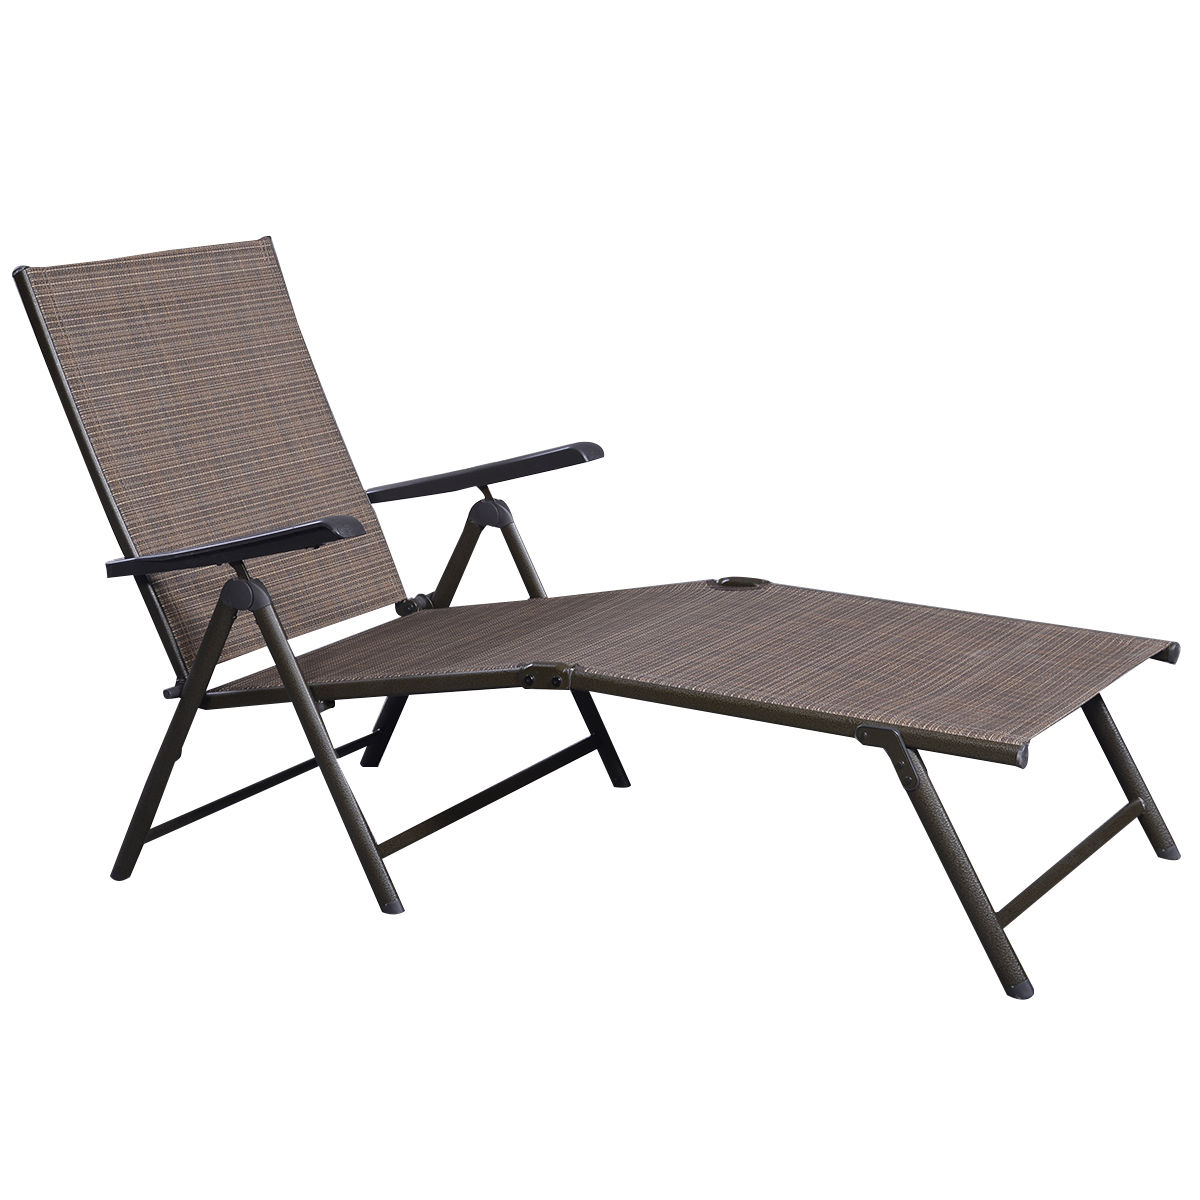 Reclining outdoor lounge chairs chairs seating for Carson chaise lounge